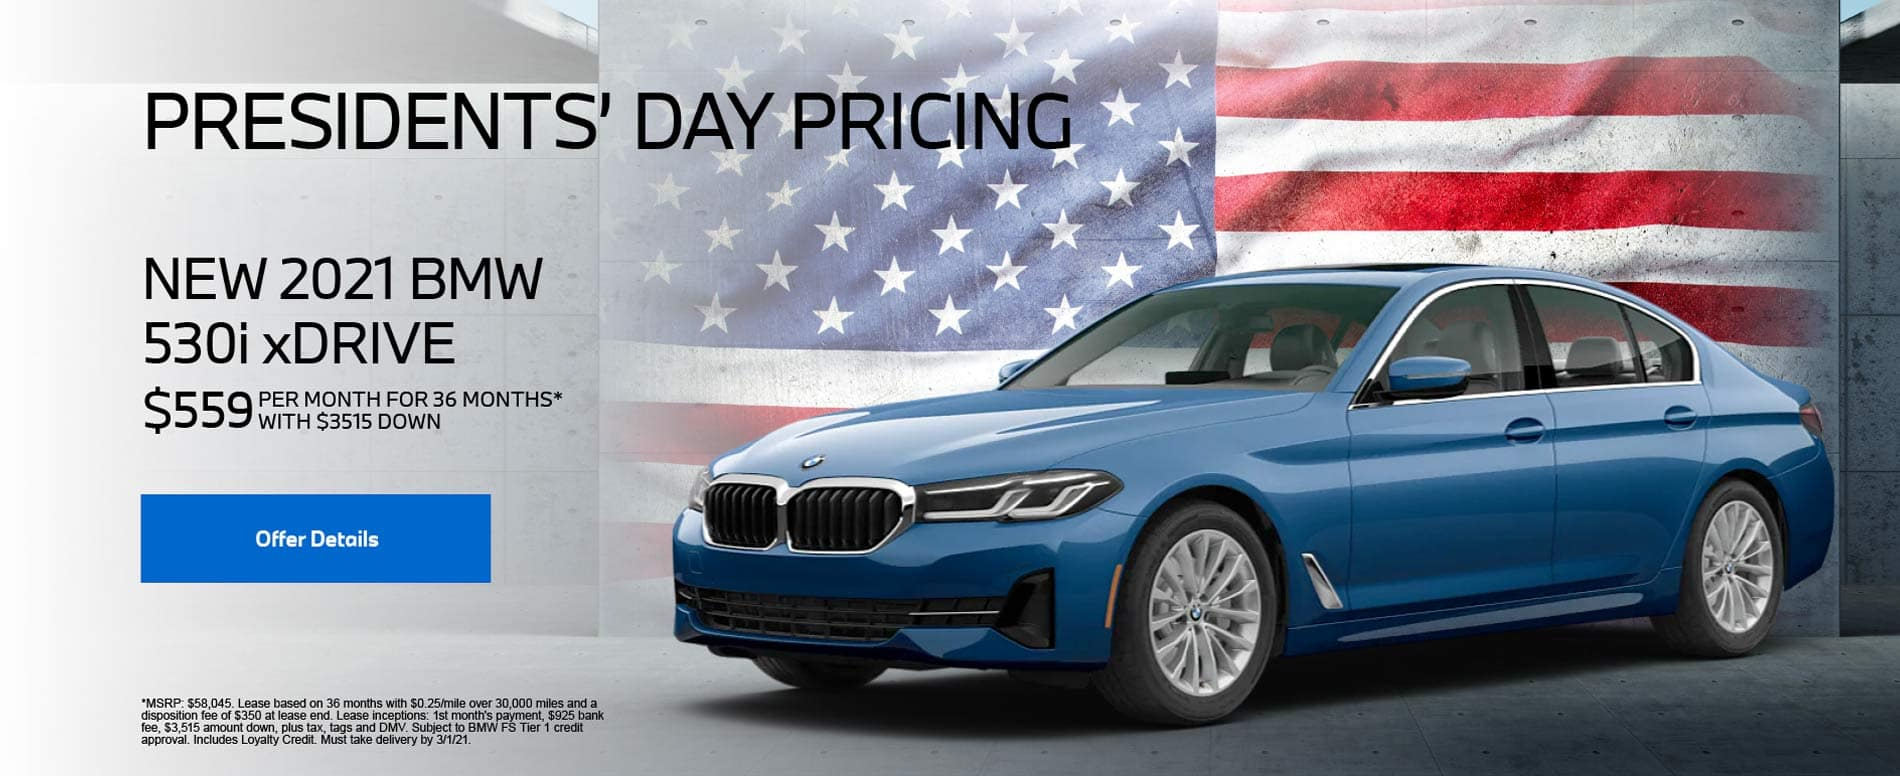 New 2021 BMW 530i xDrive $559 PER MONTH FOR 36 MONTHS* WITH $3,515 DOWN